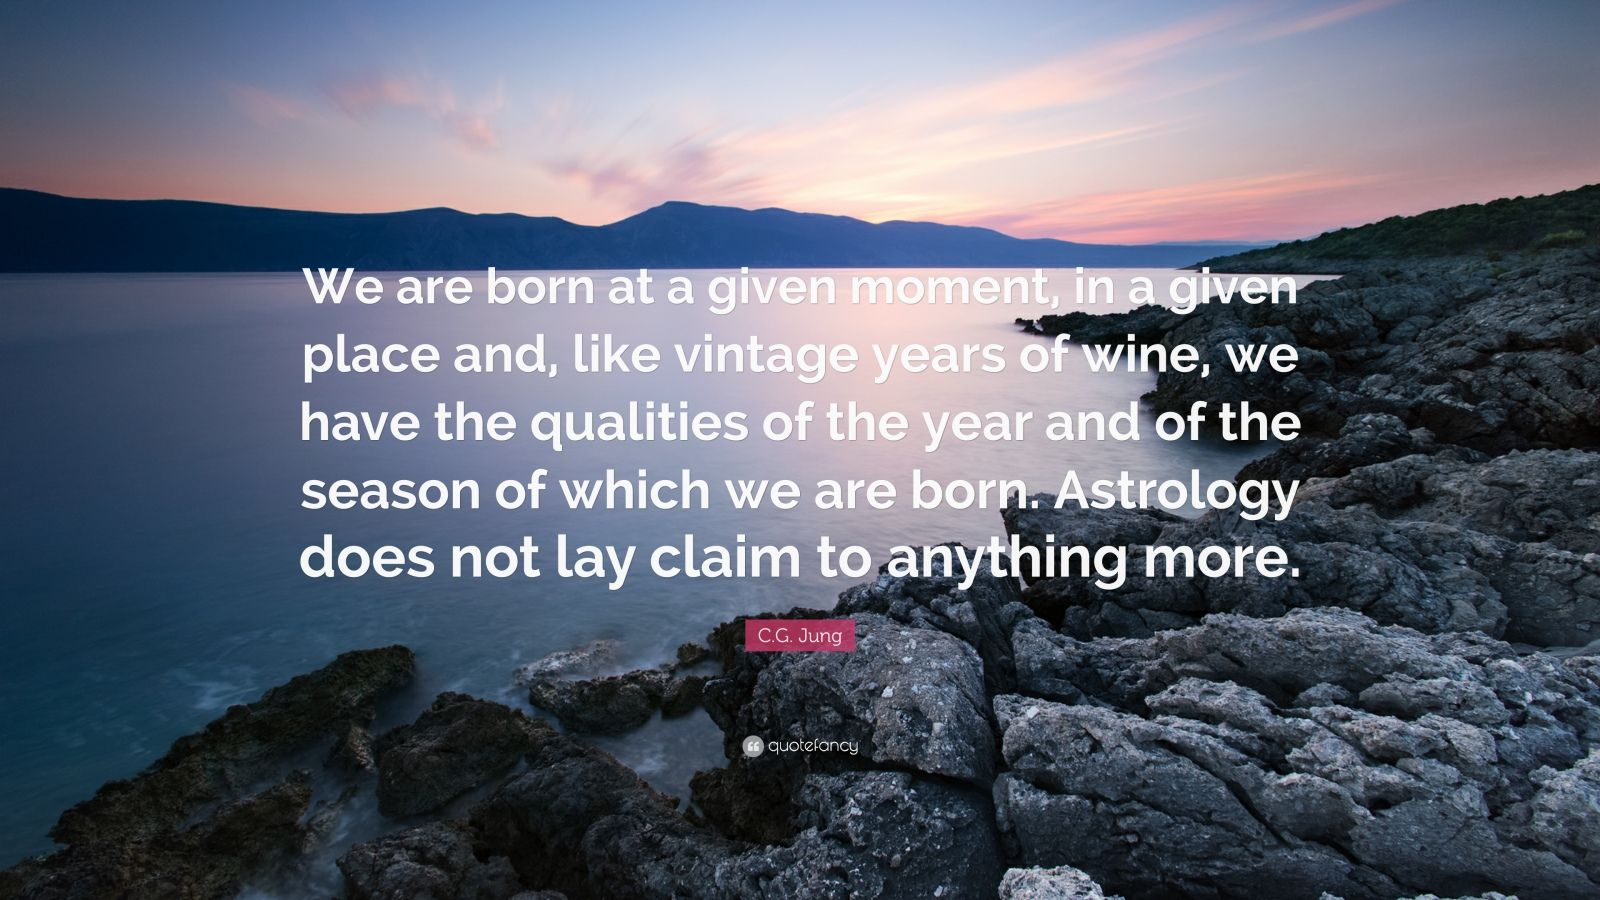 """C.G. Jung Quote: """"We are born at a given moment, in a given place and, like vintage years of wine, we have the qualities of the year and of the season of which we are born. Astrology does not lay claim to anything more."""""""